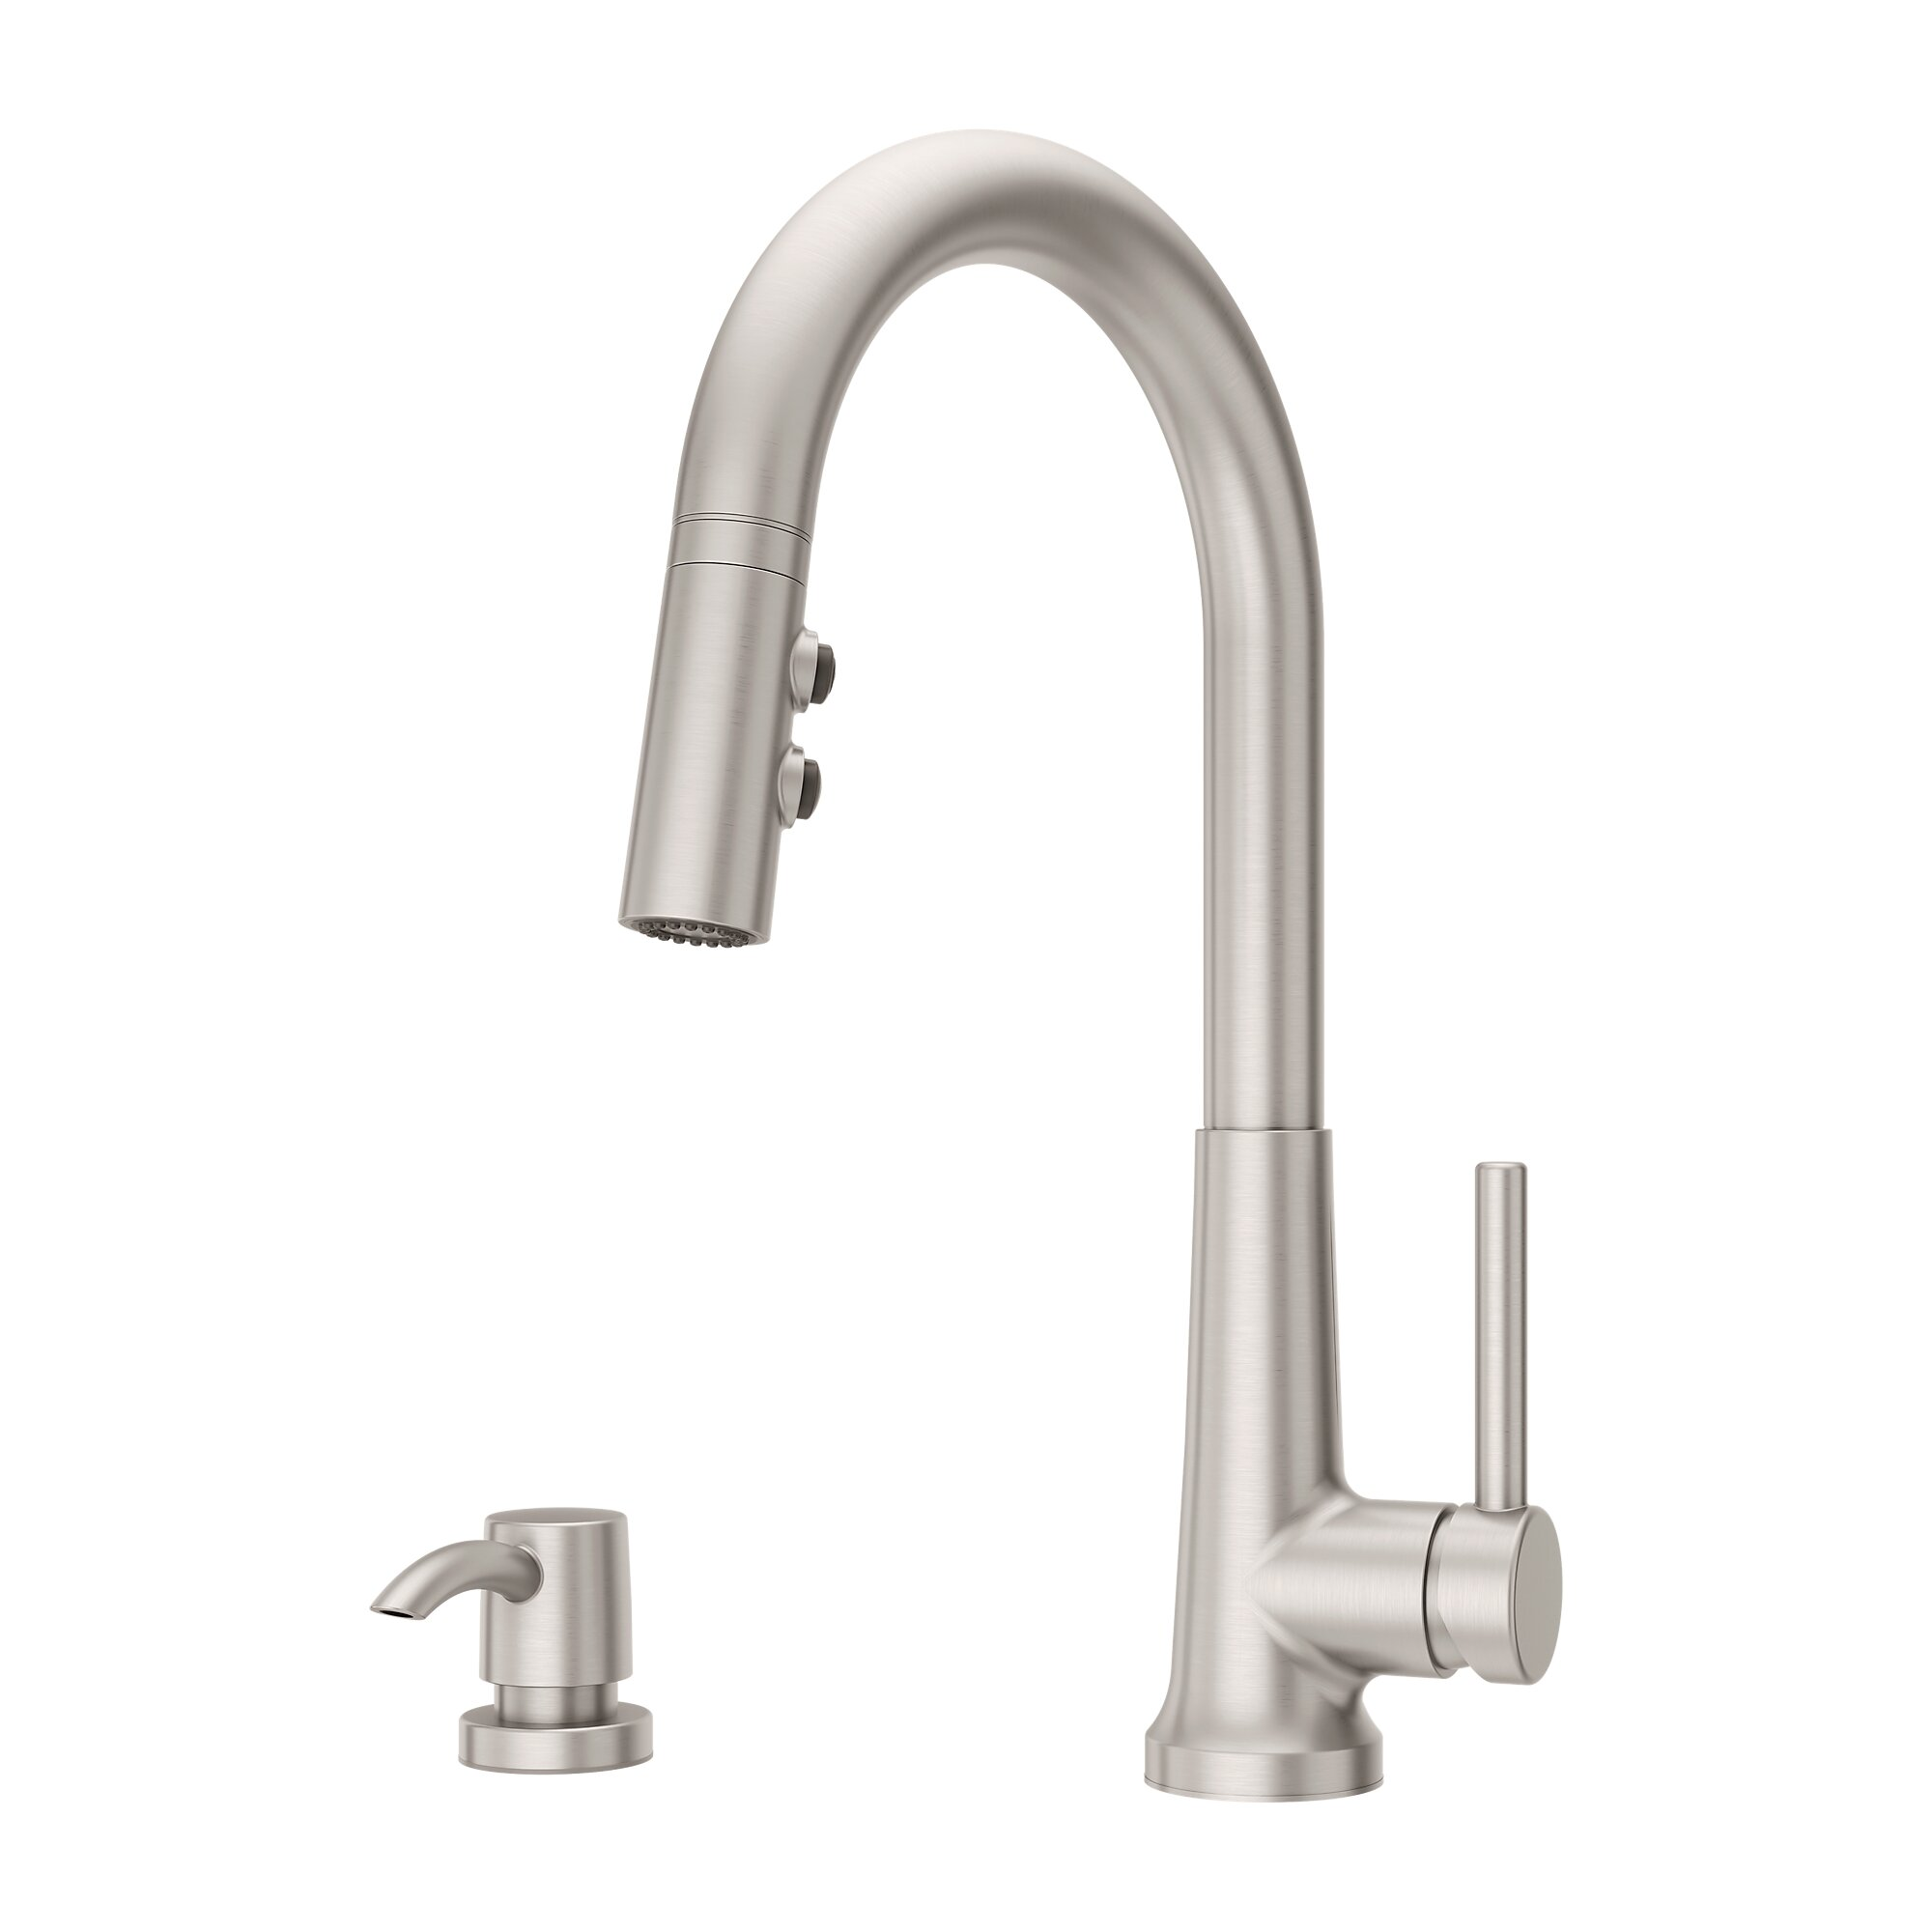 pfister f 529 7cegs crete 15 3 8 inch single lever handle deck mount pull down kitchen faucet with soap dispenser spot defense stainless steel